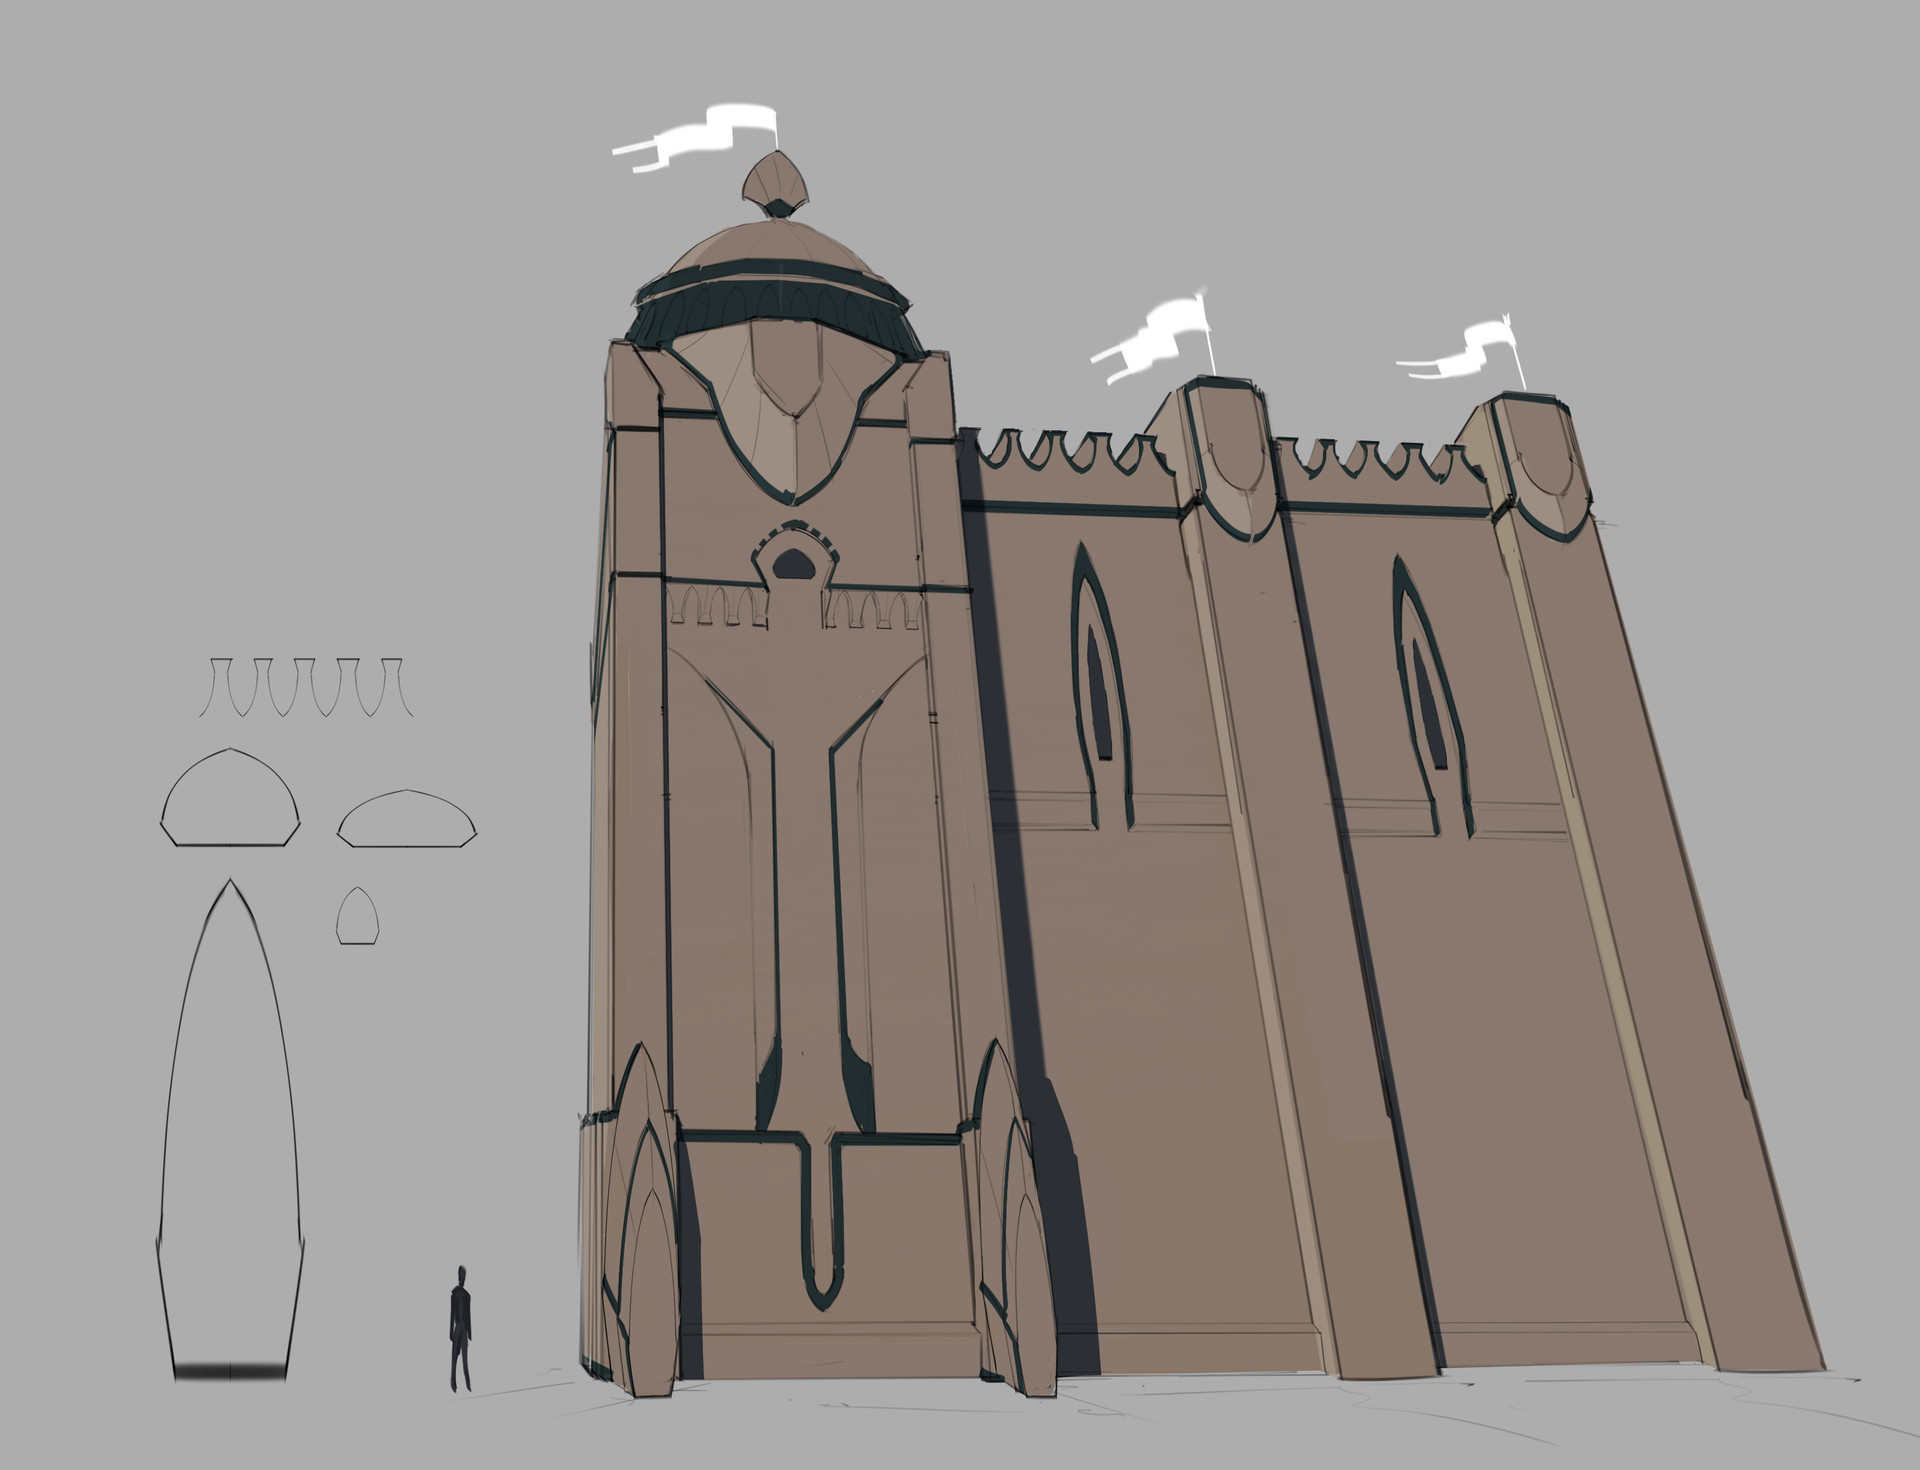 Quick draw over to design out the architecture